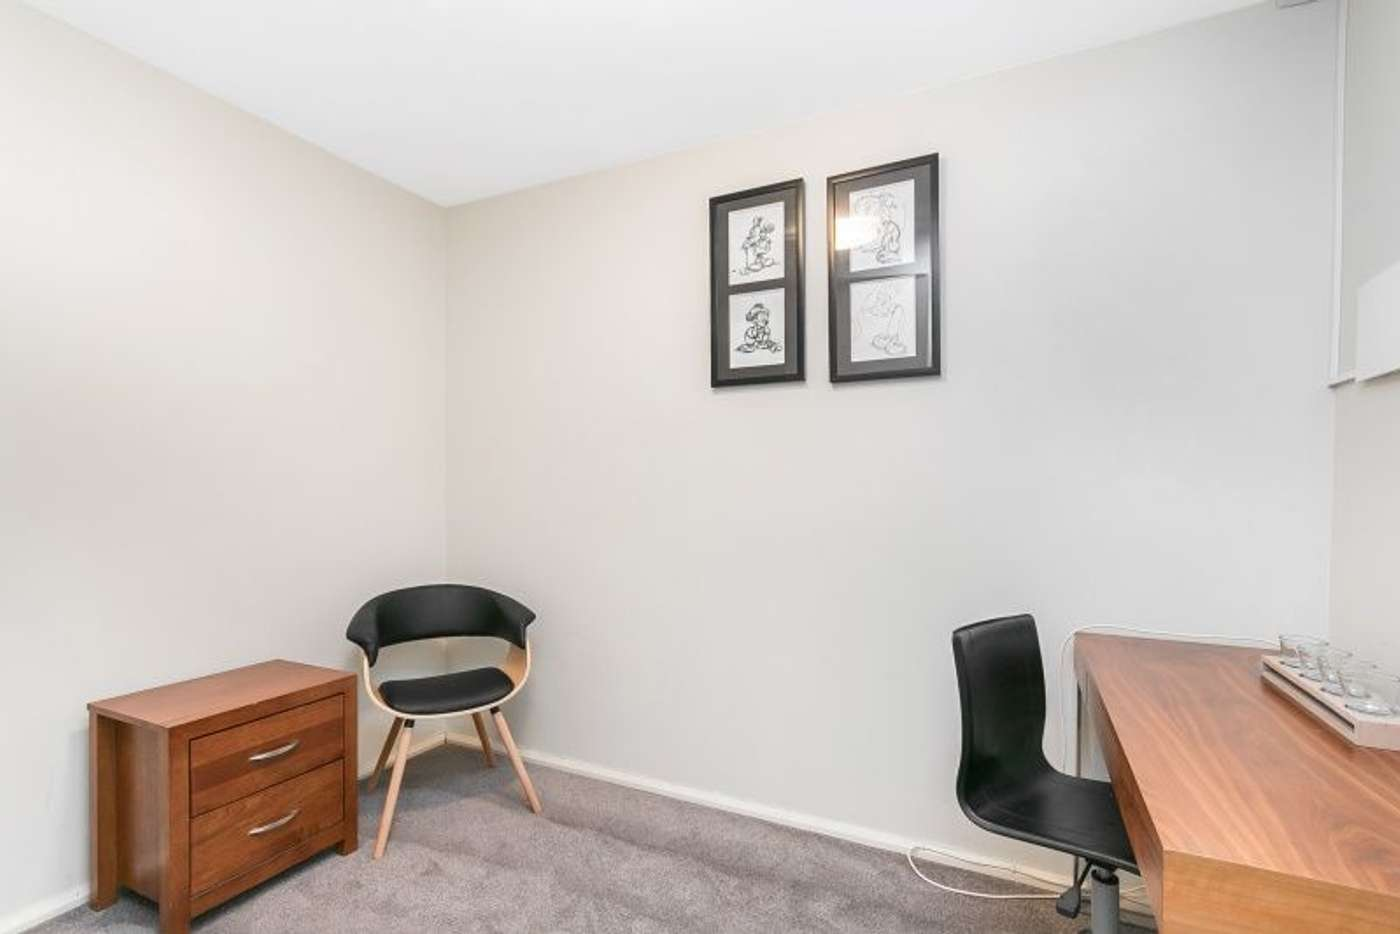 Seventh view of Homely apartment listing, 206/6 Doepel Street, North Fremantle WA 6159